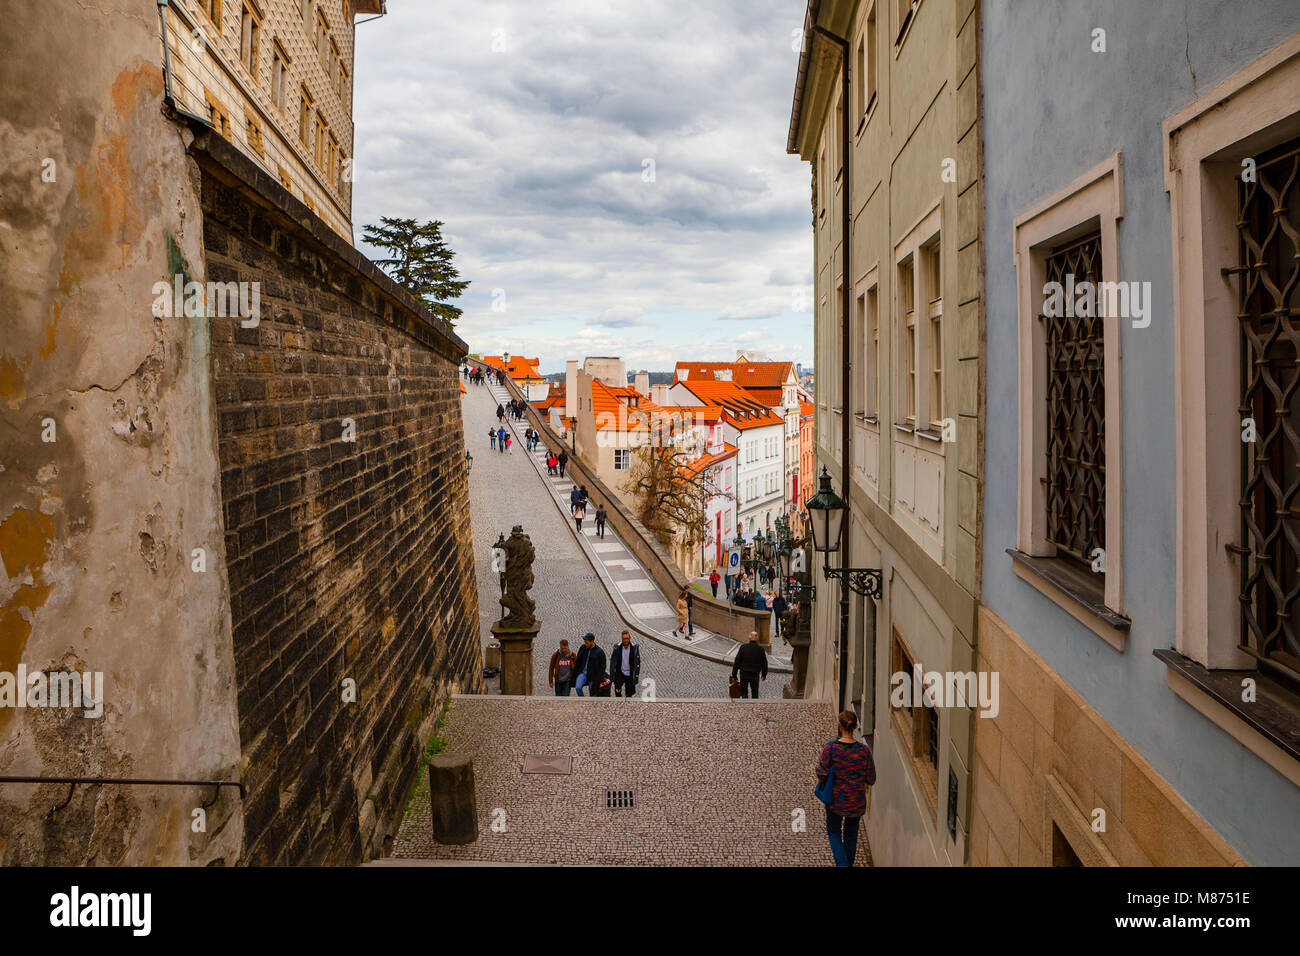 PRAGUE, CZECH REPUBLIC - APRIL 26, 2017: People walking by old streets and stairs of the castle ensemble - Stock Image